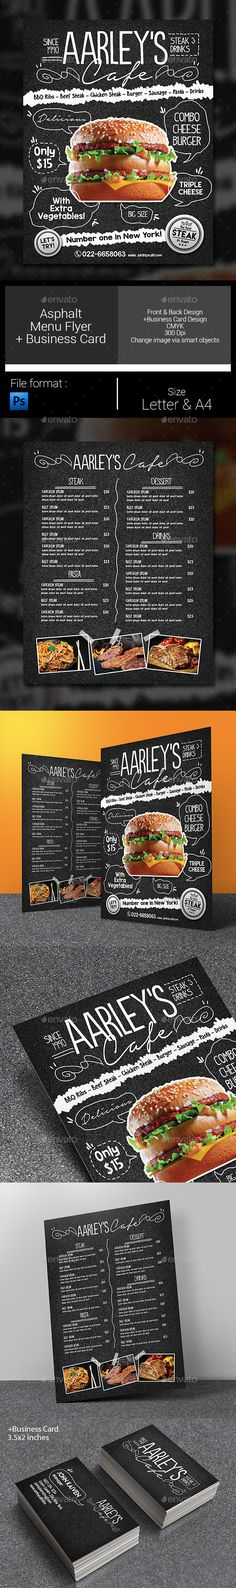 Dowload Asphalt Food Menu PSD Flyer Template for your Cafe, Steak House, Restaurant, Fast Food, etc. Very easy to edit text and change images. Restaurant Poster, Restaurant Menu Design, House Restaurant, Burger Bar, Food Menu Template, Flyer Template, Photoshop, Menu Flyer, Food Menu Design